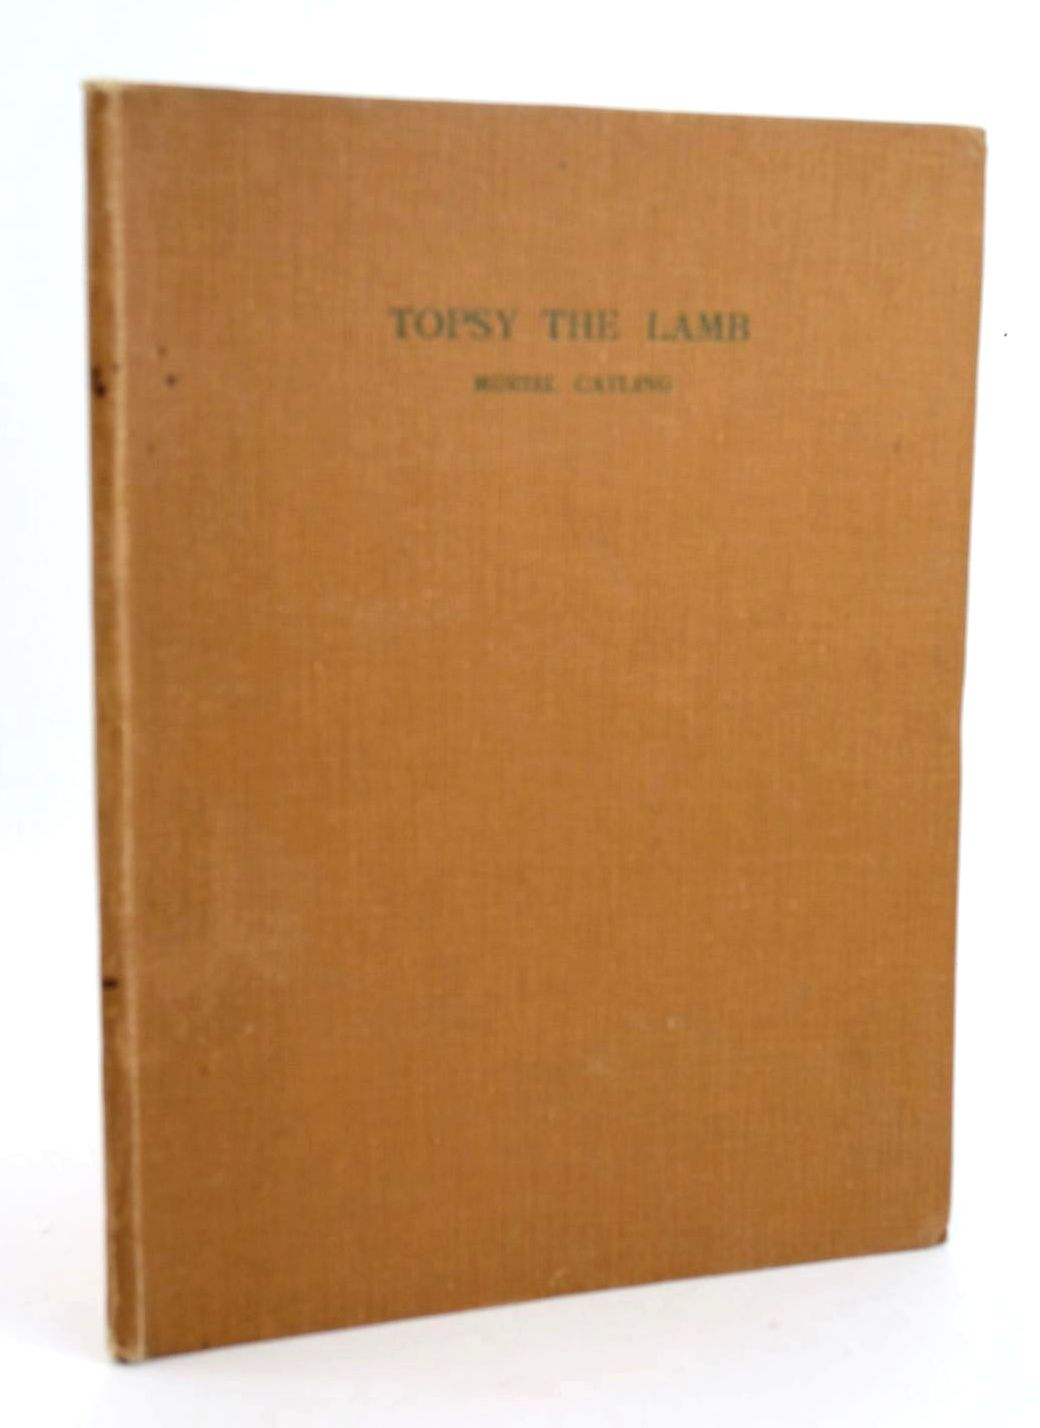 Photo of TOPSY THE AUTOBIOGRAPHY OF A WINTER LAMB written by Catling, Muriel illustrated by Catling, Muriel published by Arthur H. Stockwell Ltd. (STOCK CODE: 1319066)  for sale by Stella & Rose's Books